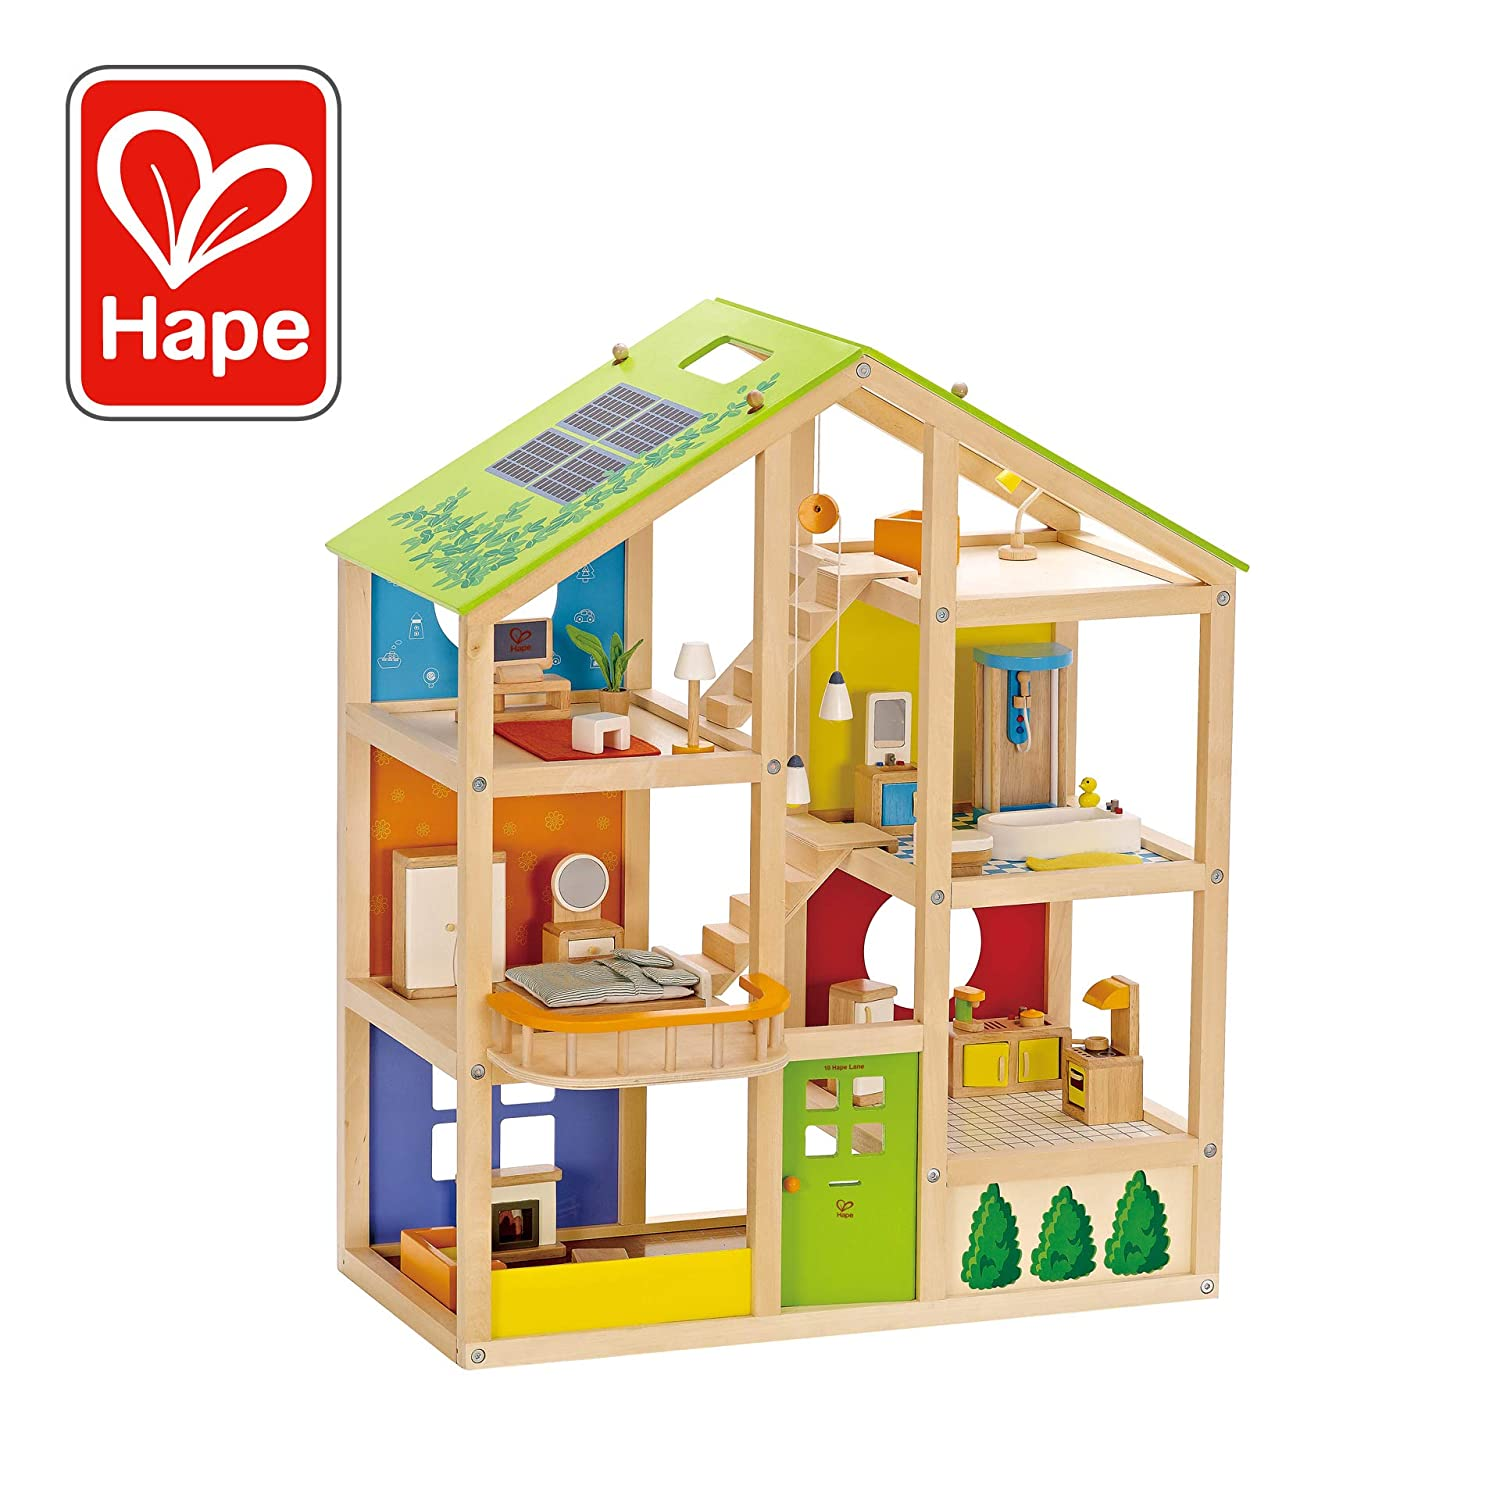 Top 9 Best Dollhouse for Toddlers Reviews in 2021 13